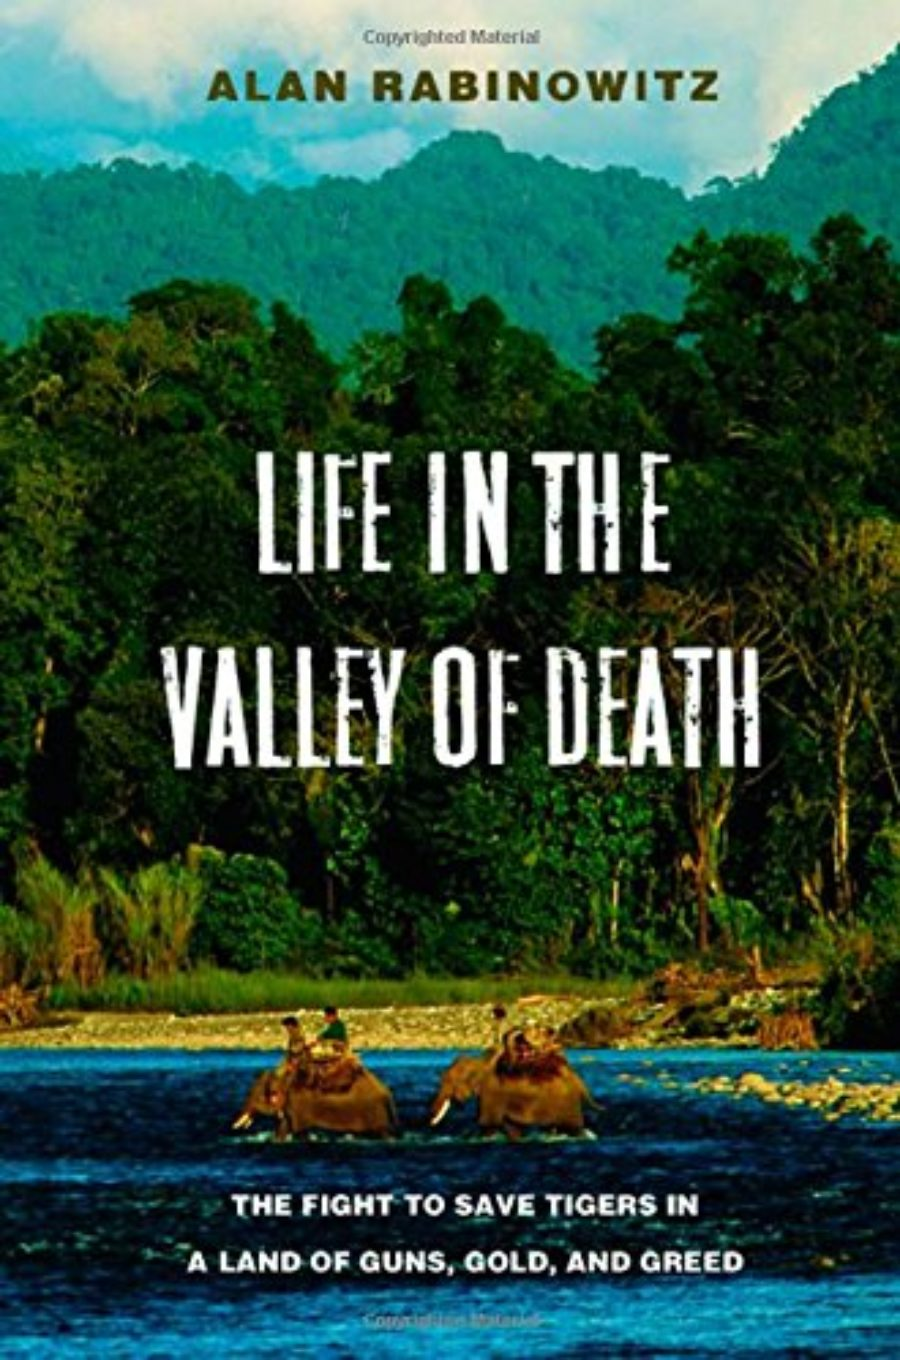 Cover of Life in the Valley of Death: The Fight to Save Tigers in a Land of Guns, Gold, and Greed